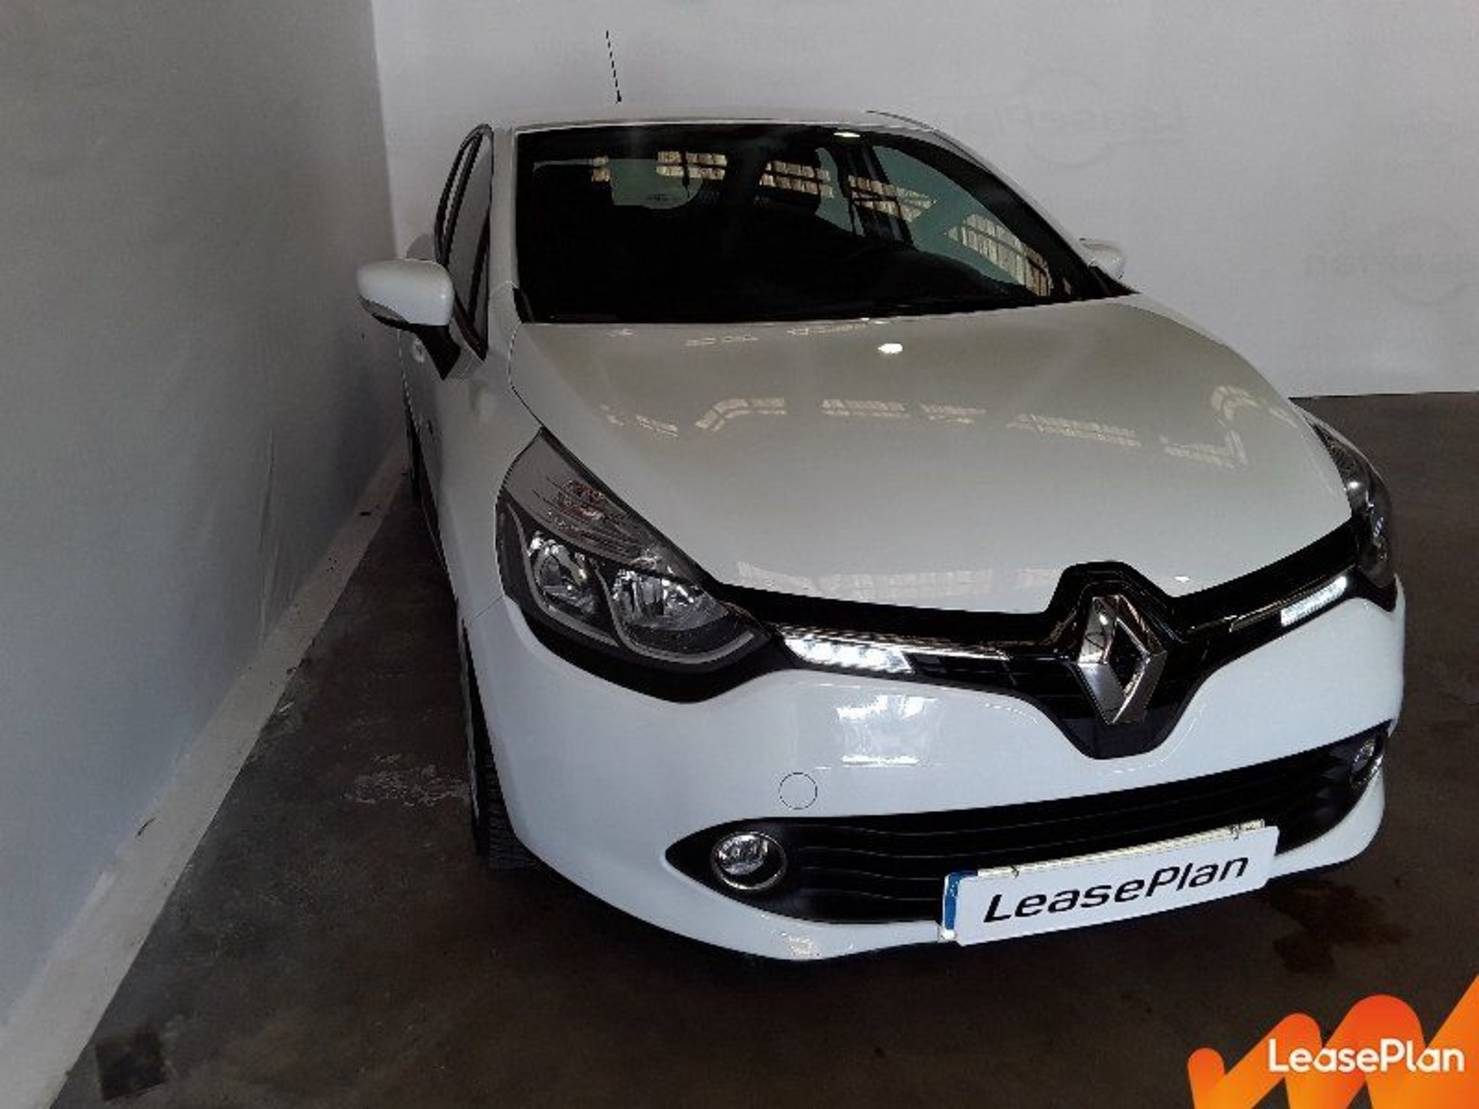 Renault Clio IV dCi 75 eco2, Business detail2